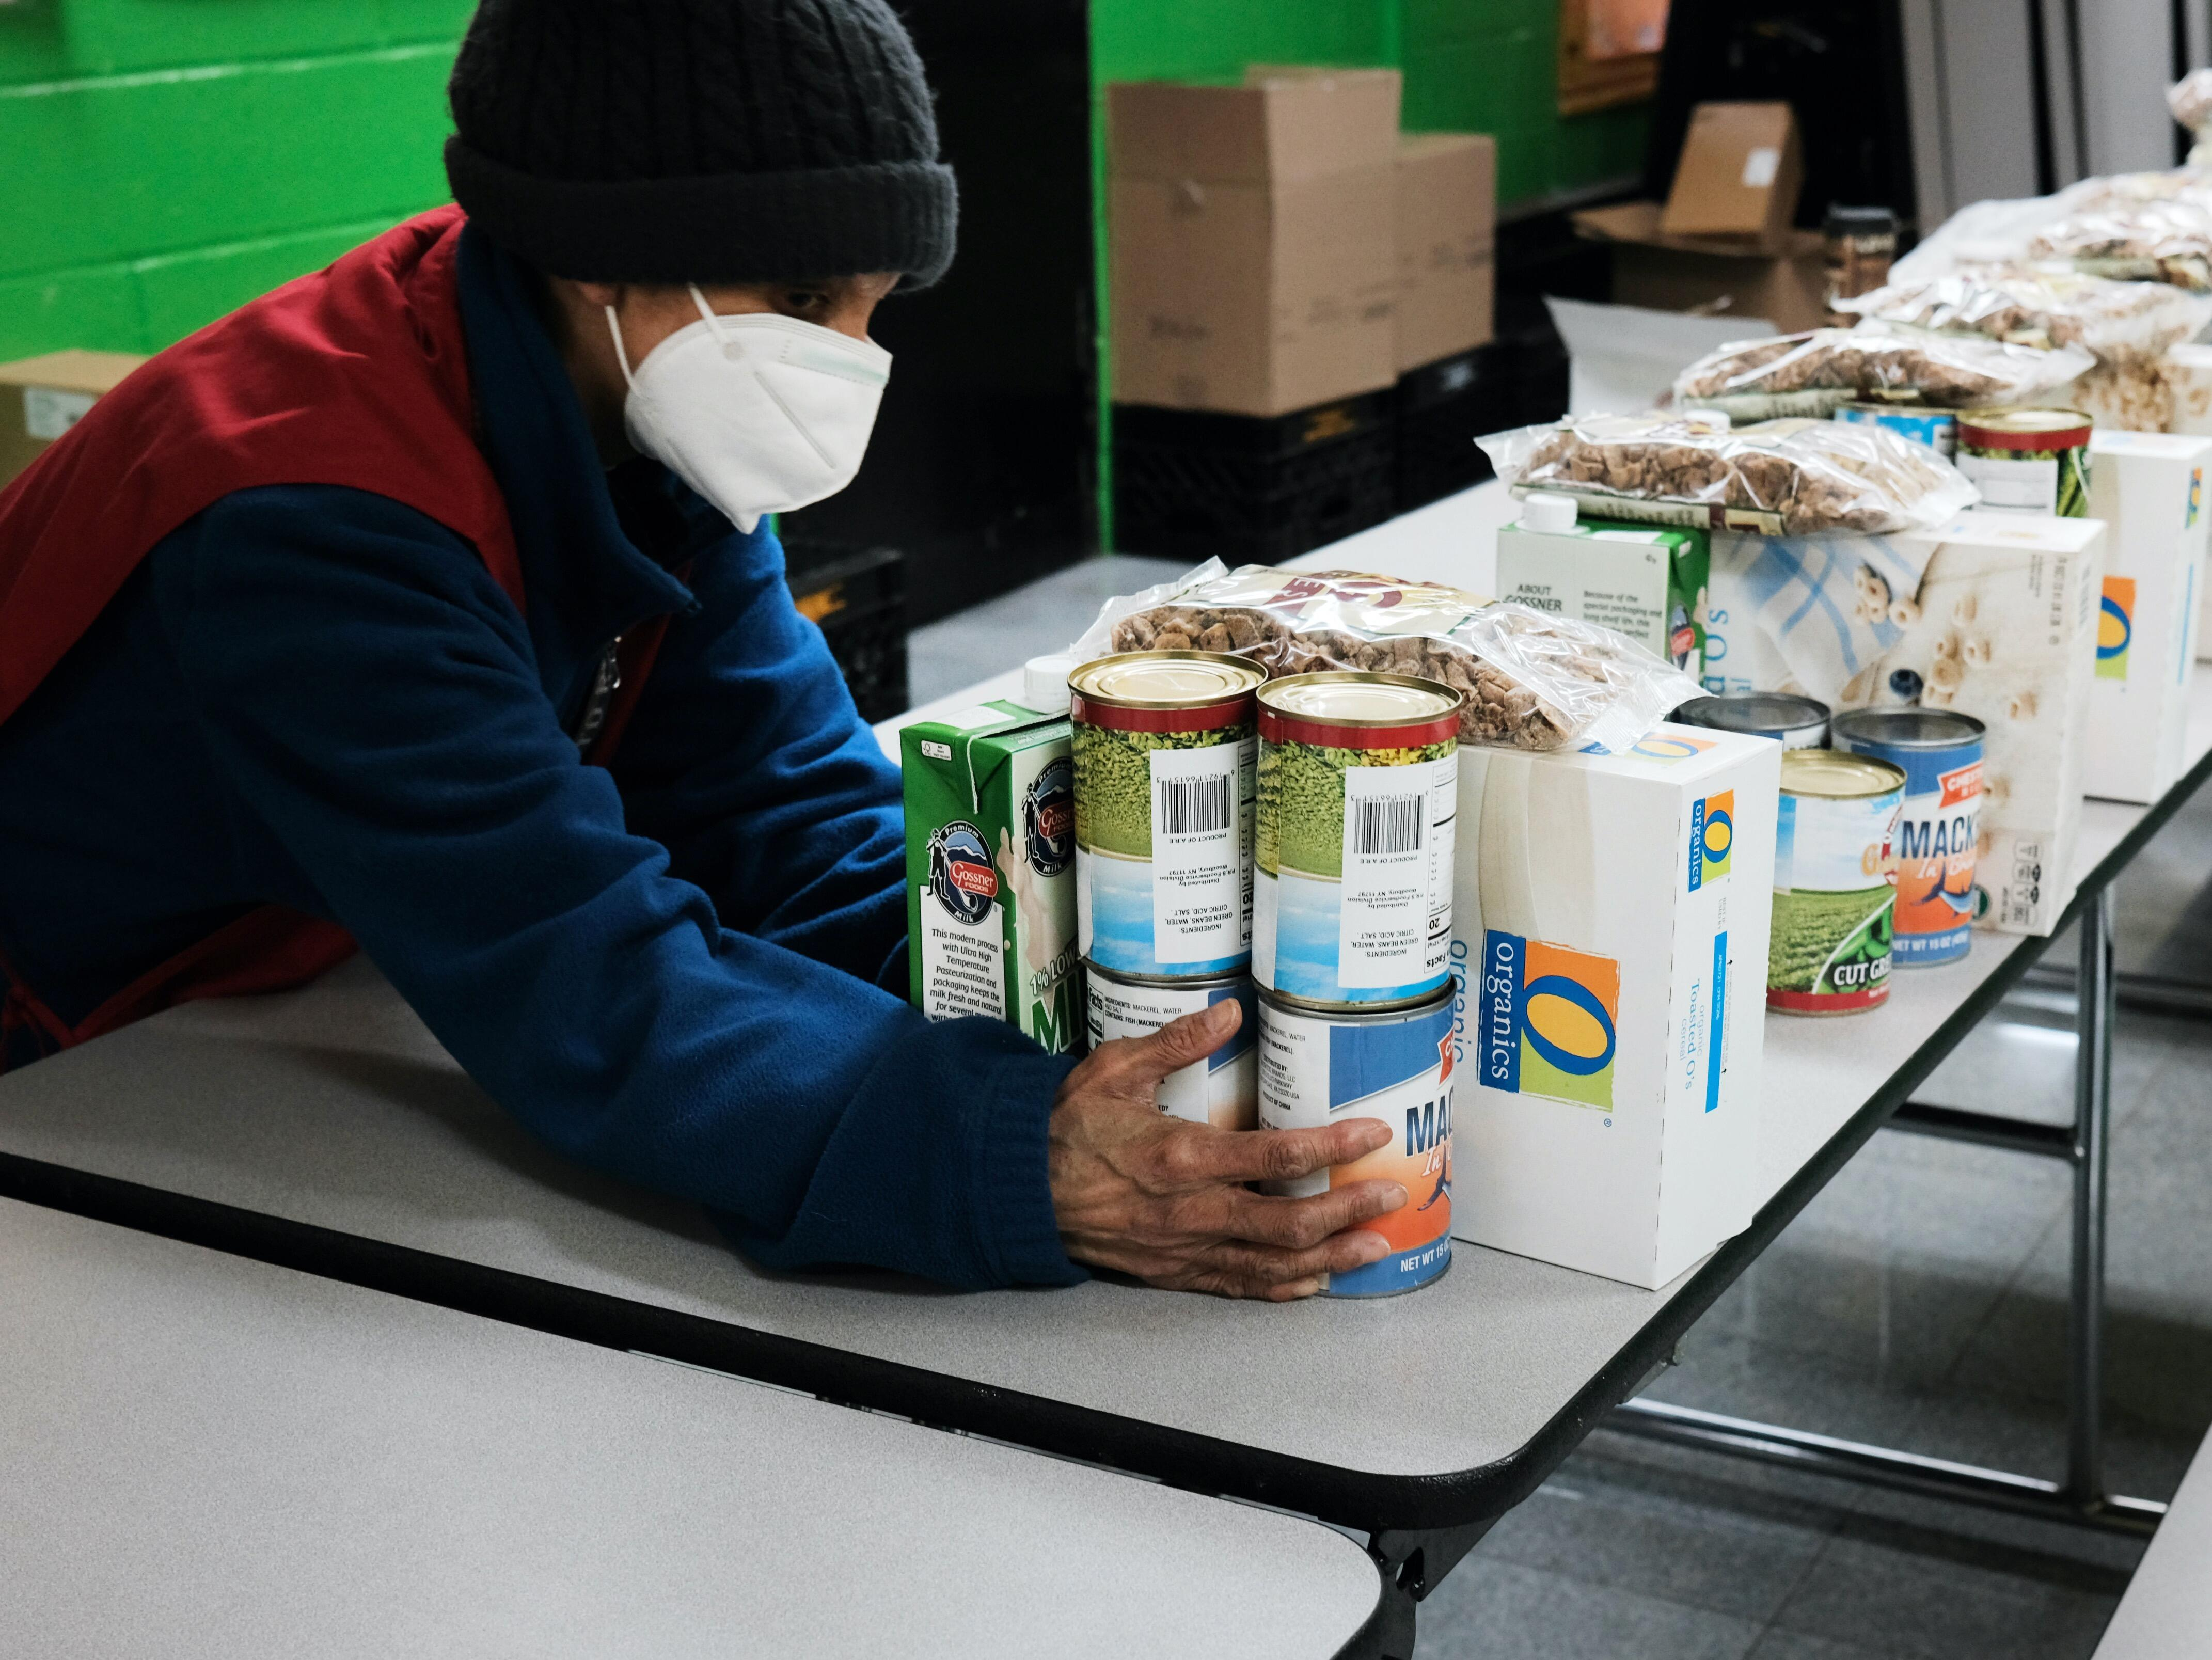 Volunteers prepare food at a food distribution center in the South Bronx, which had one of the highest COVID-19 infection rates in New York City. It's also home to an estimated 60% of New York City's very low income residents.